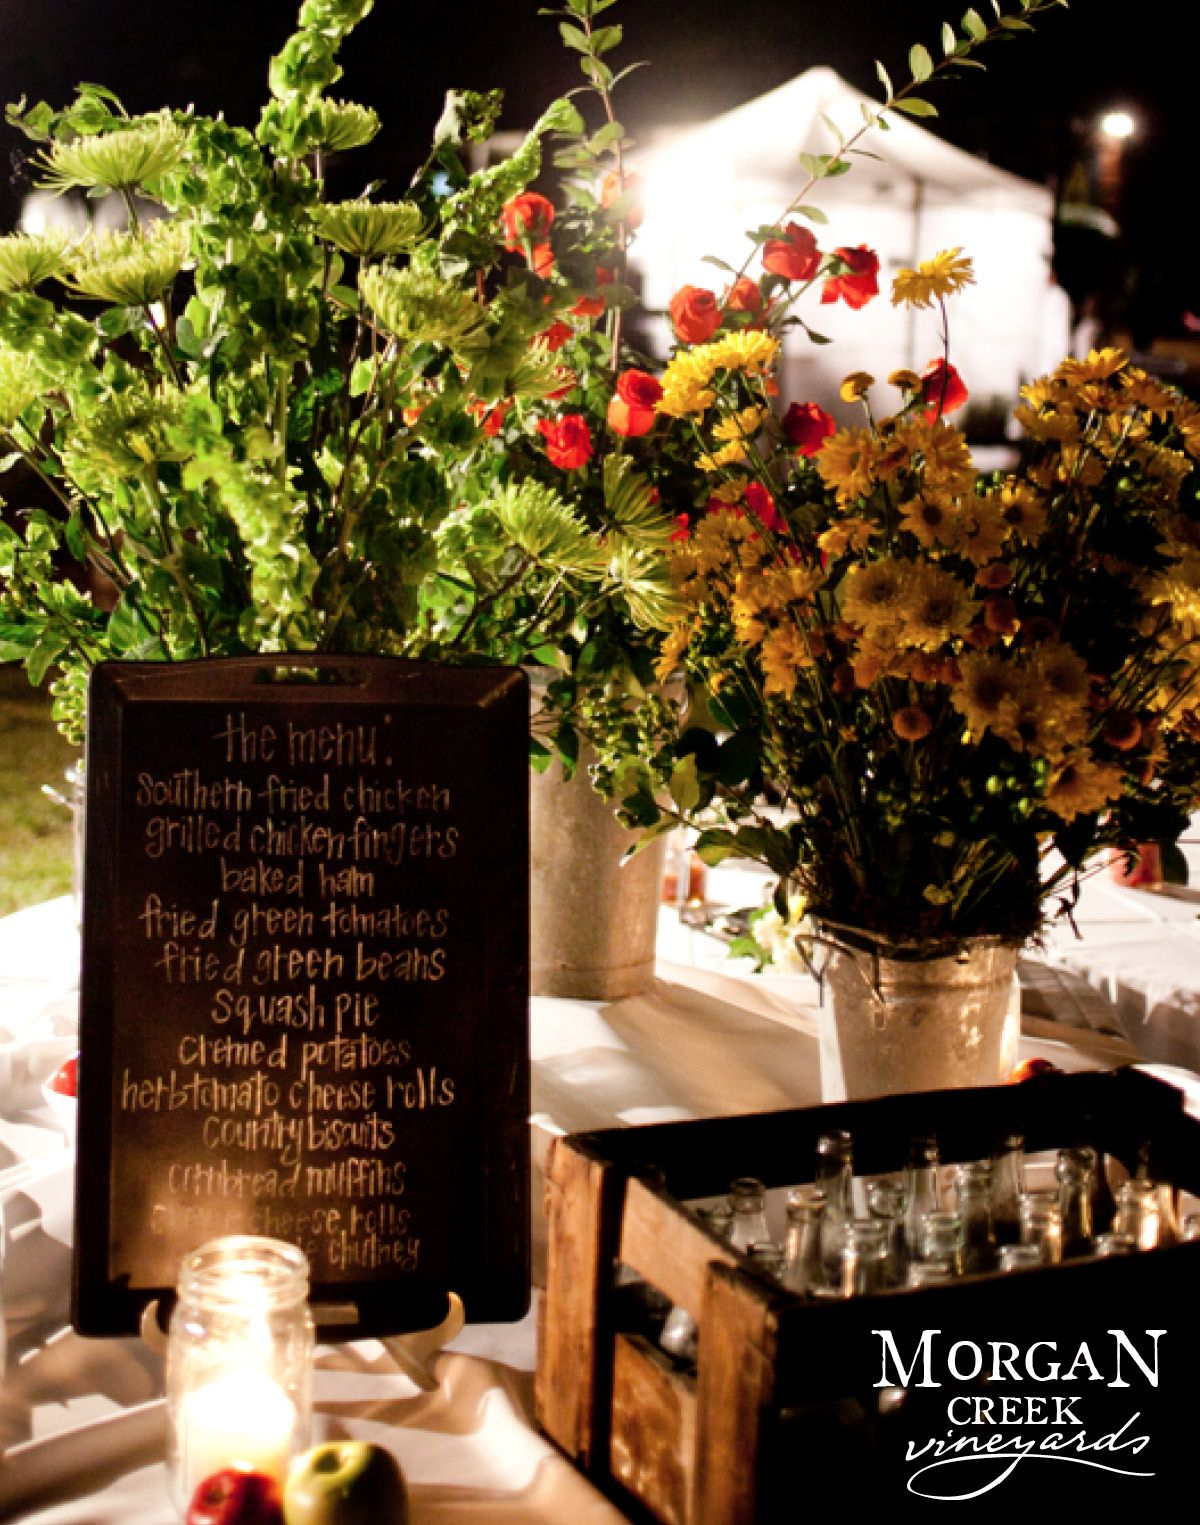 www.morgancreekwinery.com #winery #vineyard #winerywedding #vineyardwedding #bride #groom #wedding #reception #florals